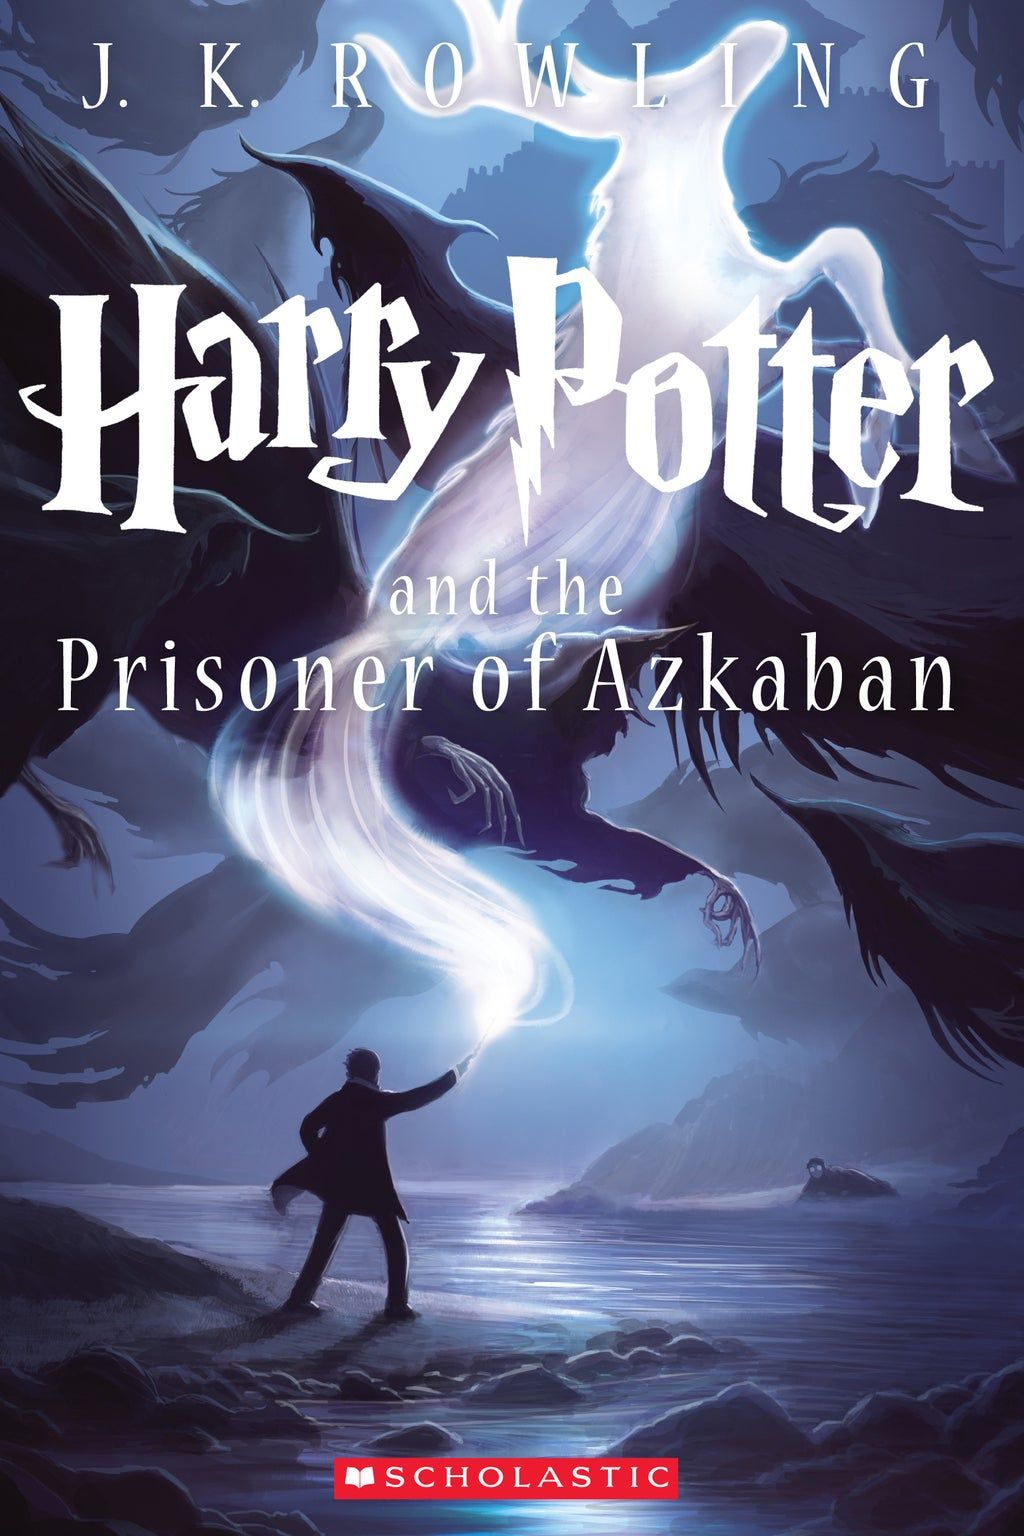 Harry Potter Gets Seven New Illustrated Covers In 2020 Harry Potter Book Covers Prisoner Of Azkaban Book Rowling Harry Potter